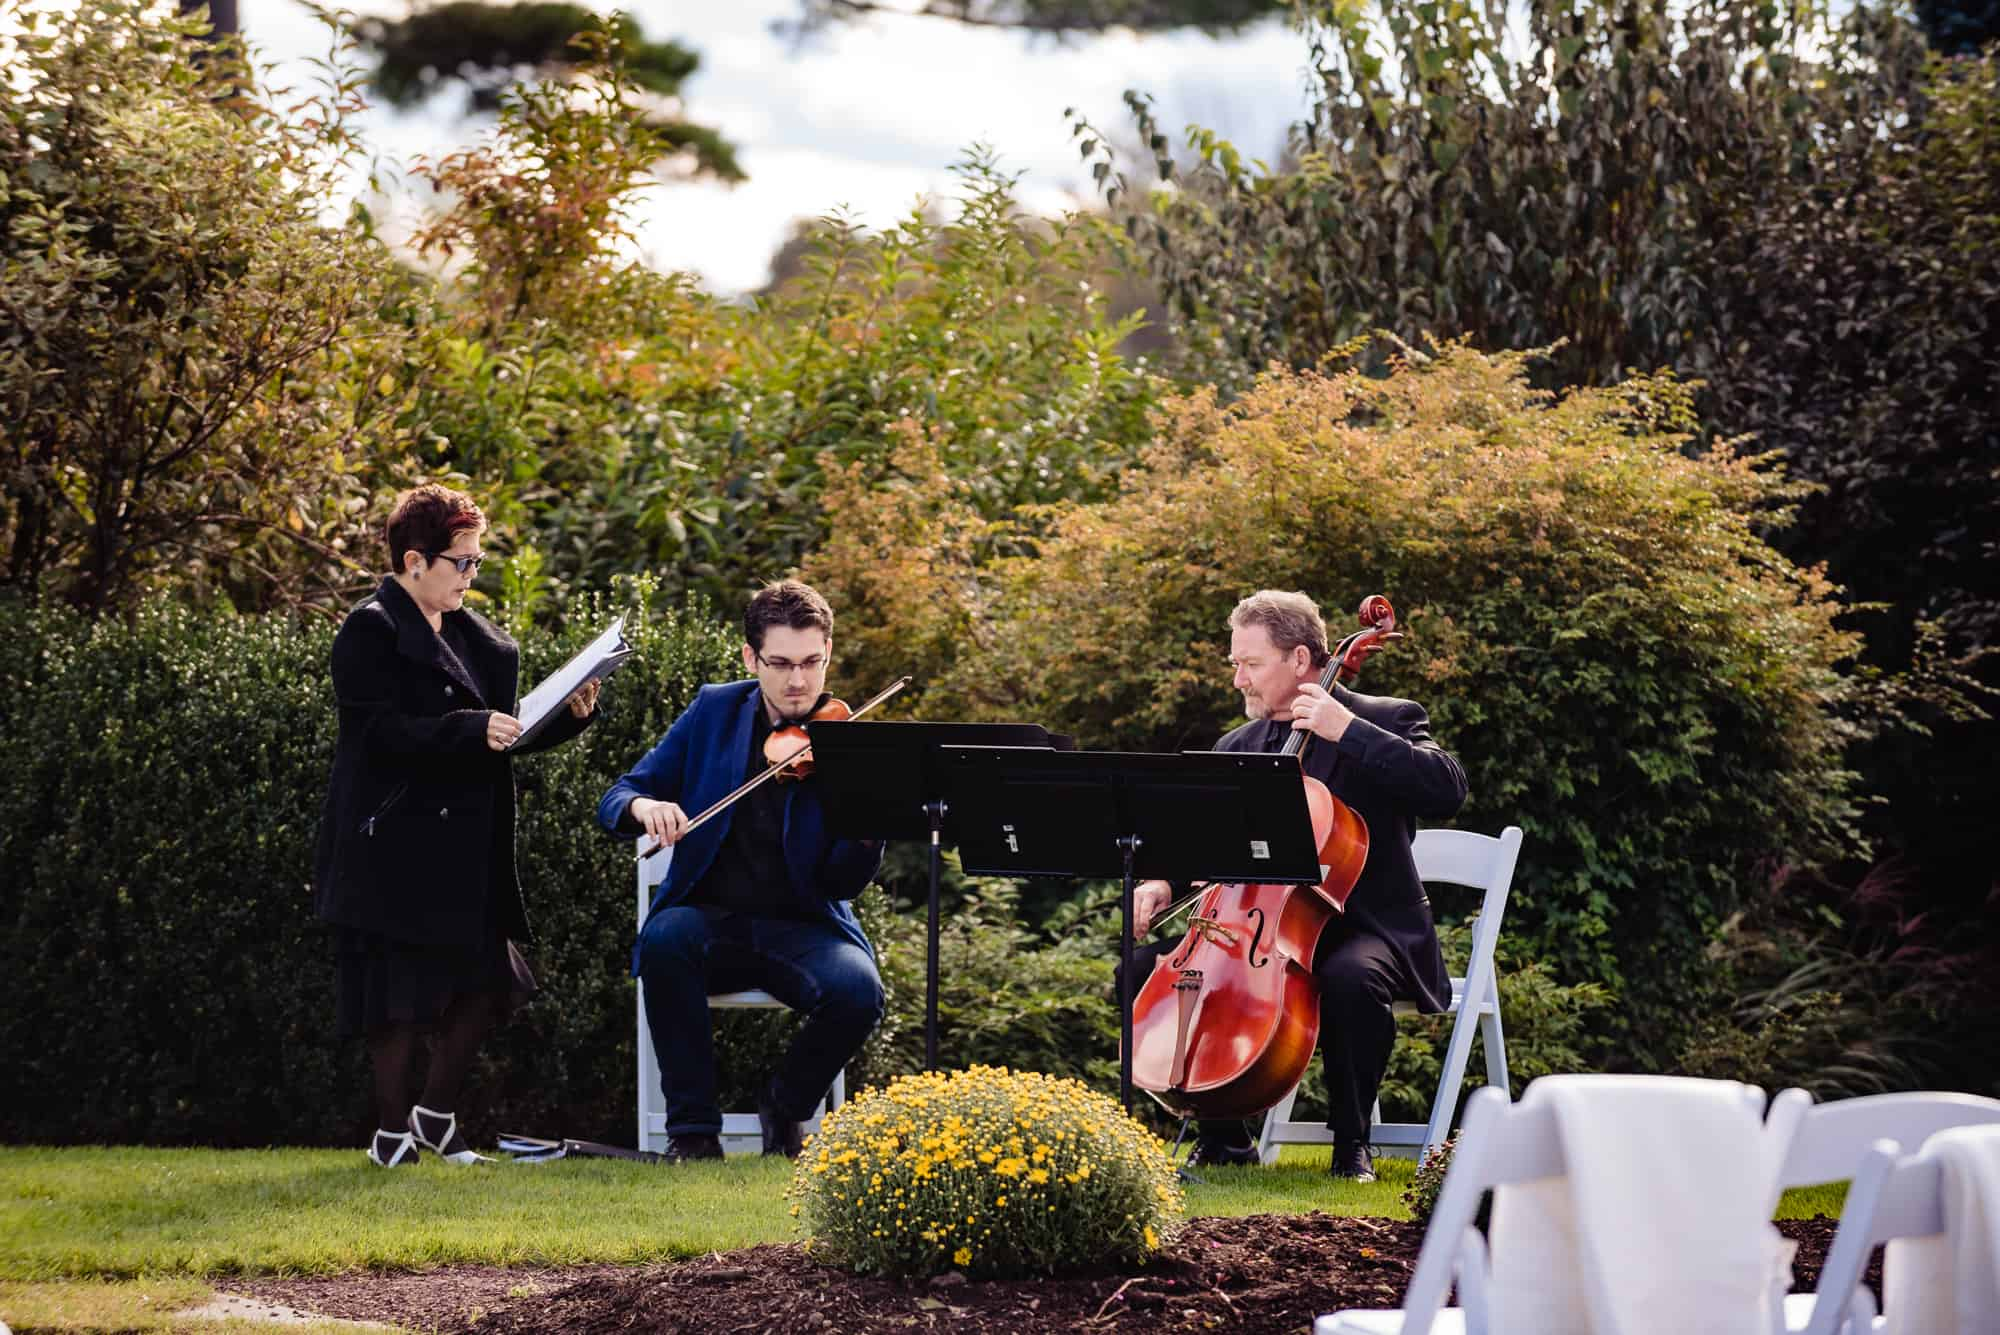 musicians at an outdoor wedding playing wedding reception music